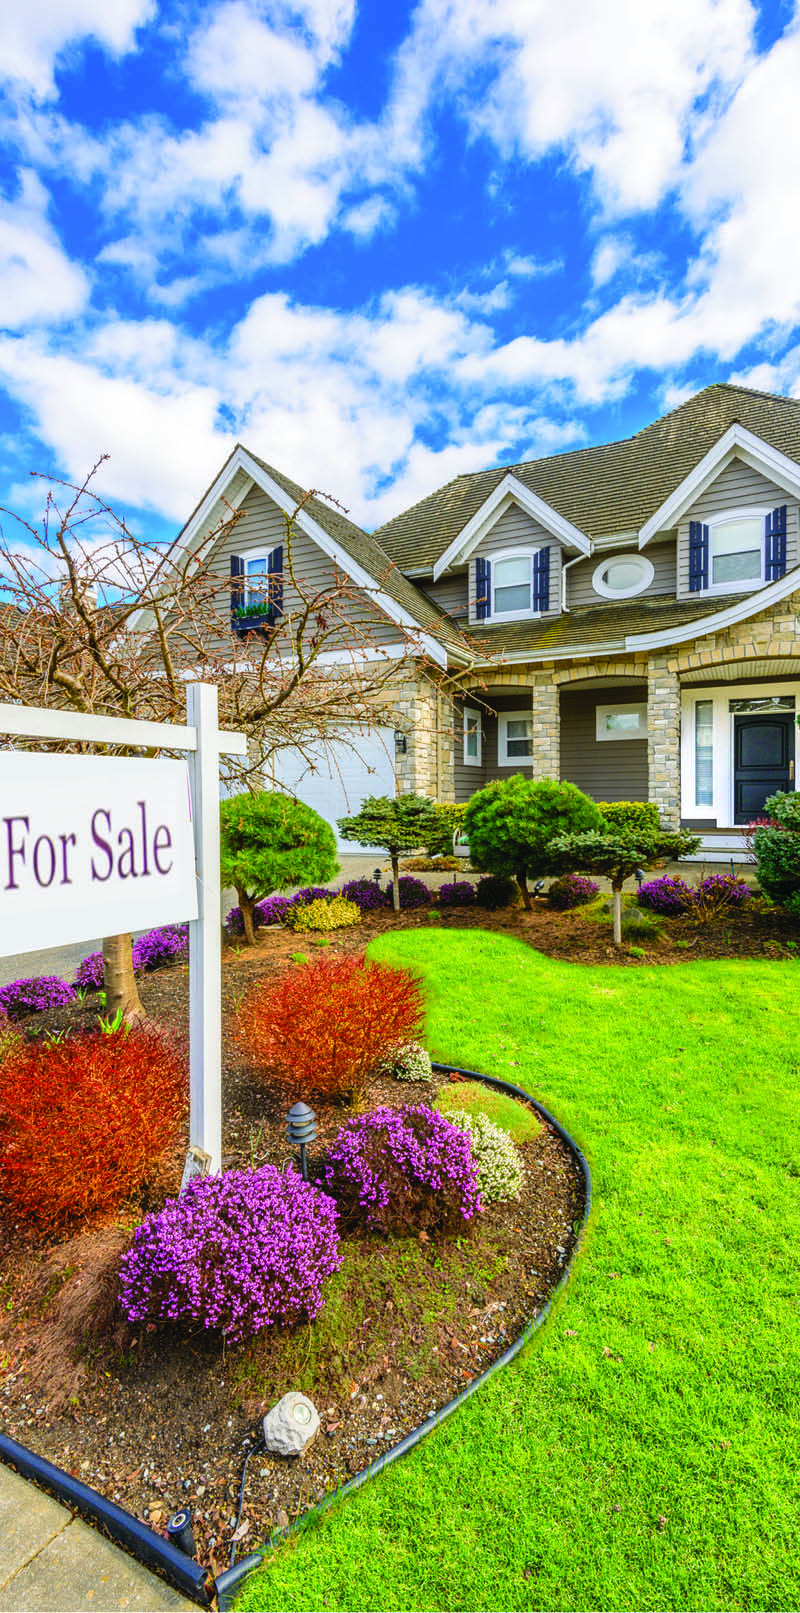 5-16 Home_Buy Sell_web2